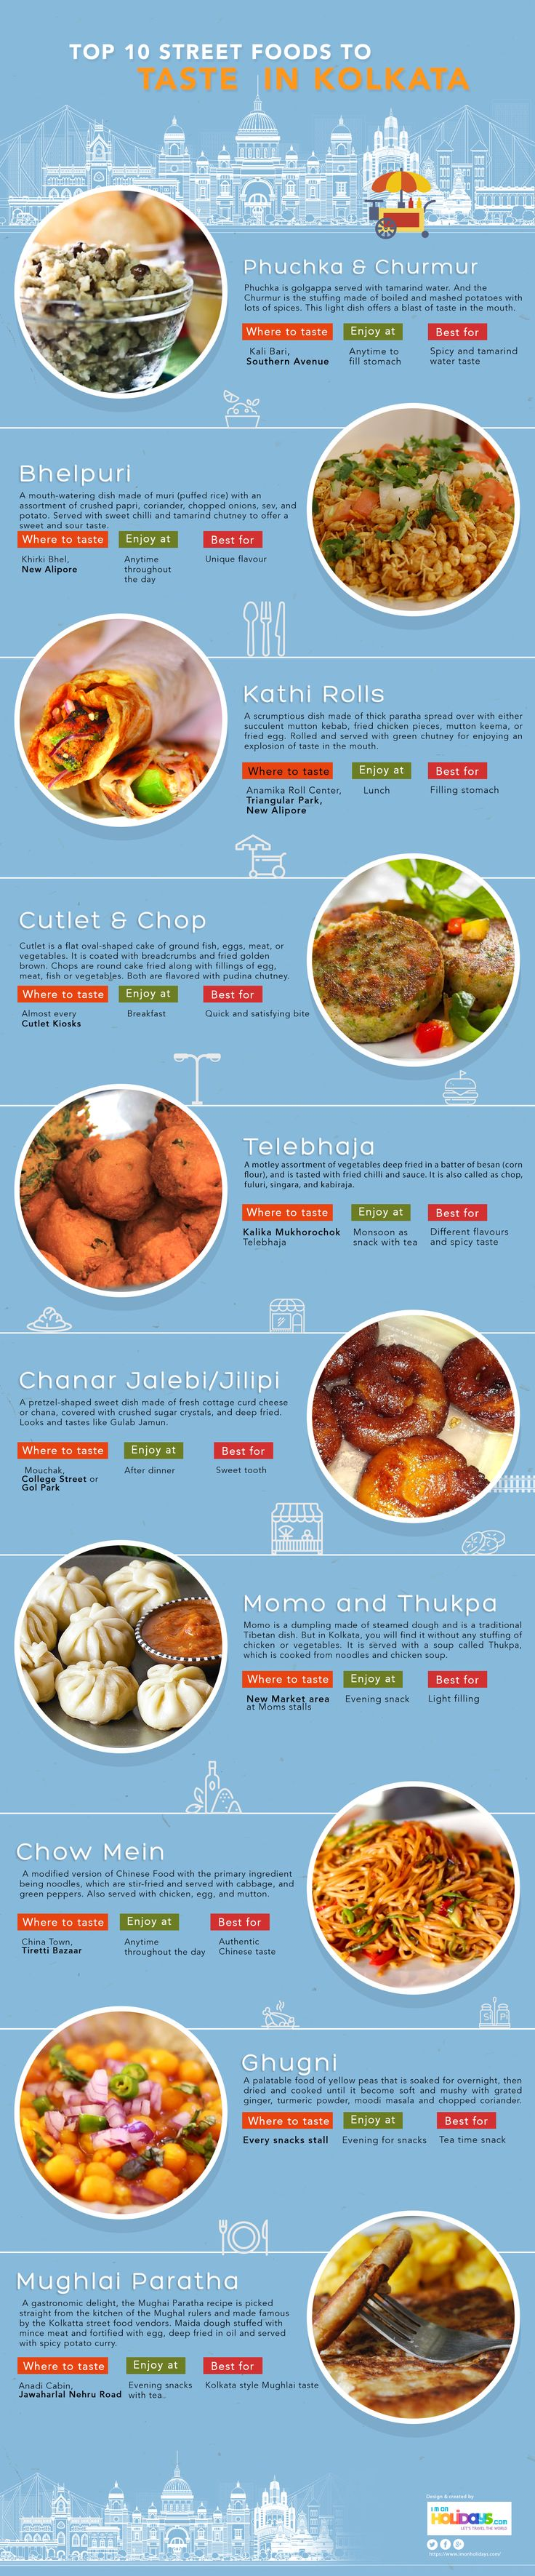 Top 10 Street Foods to Taste in Kolkata #Infographic #Food #Travel